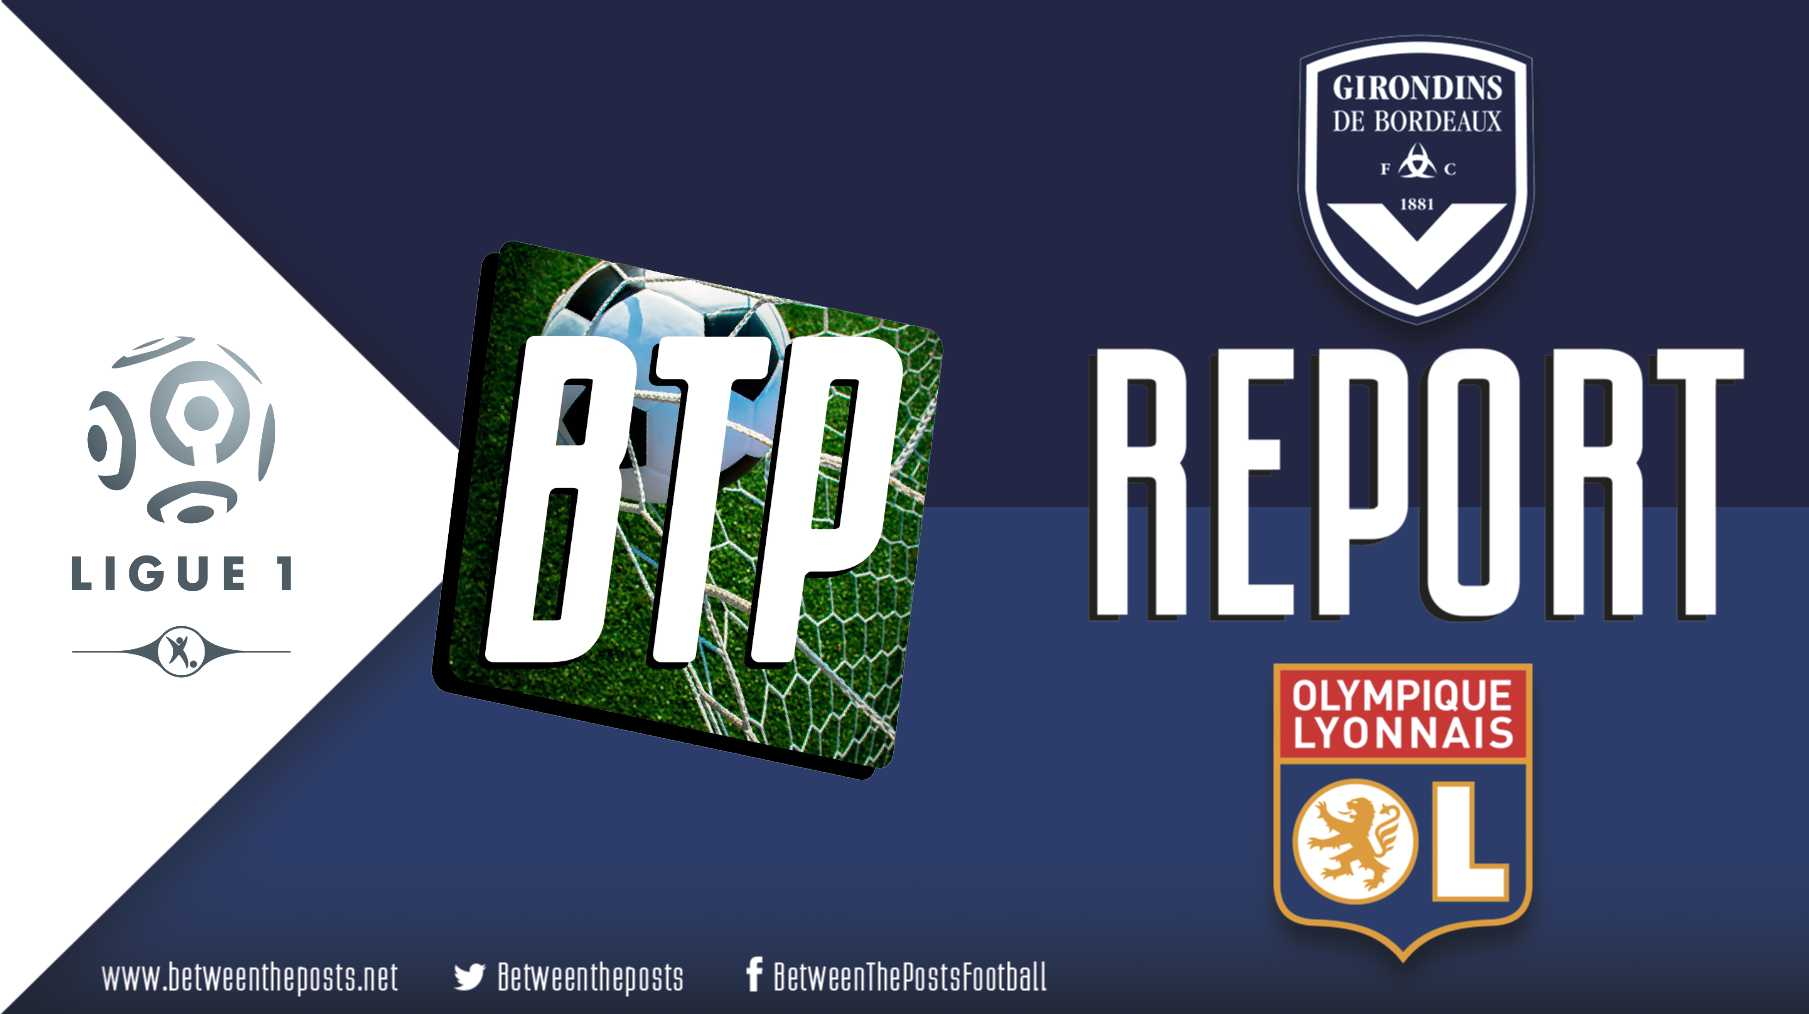 Tactical analysis Girondins de Bordeaux Olympique Lyonnais 1-2 Ligue 1